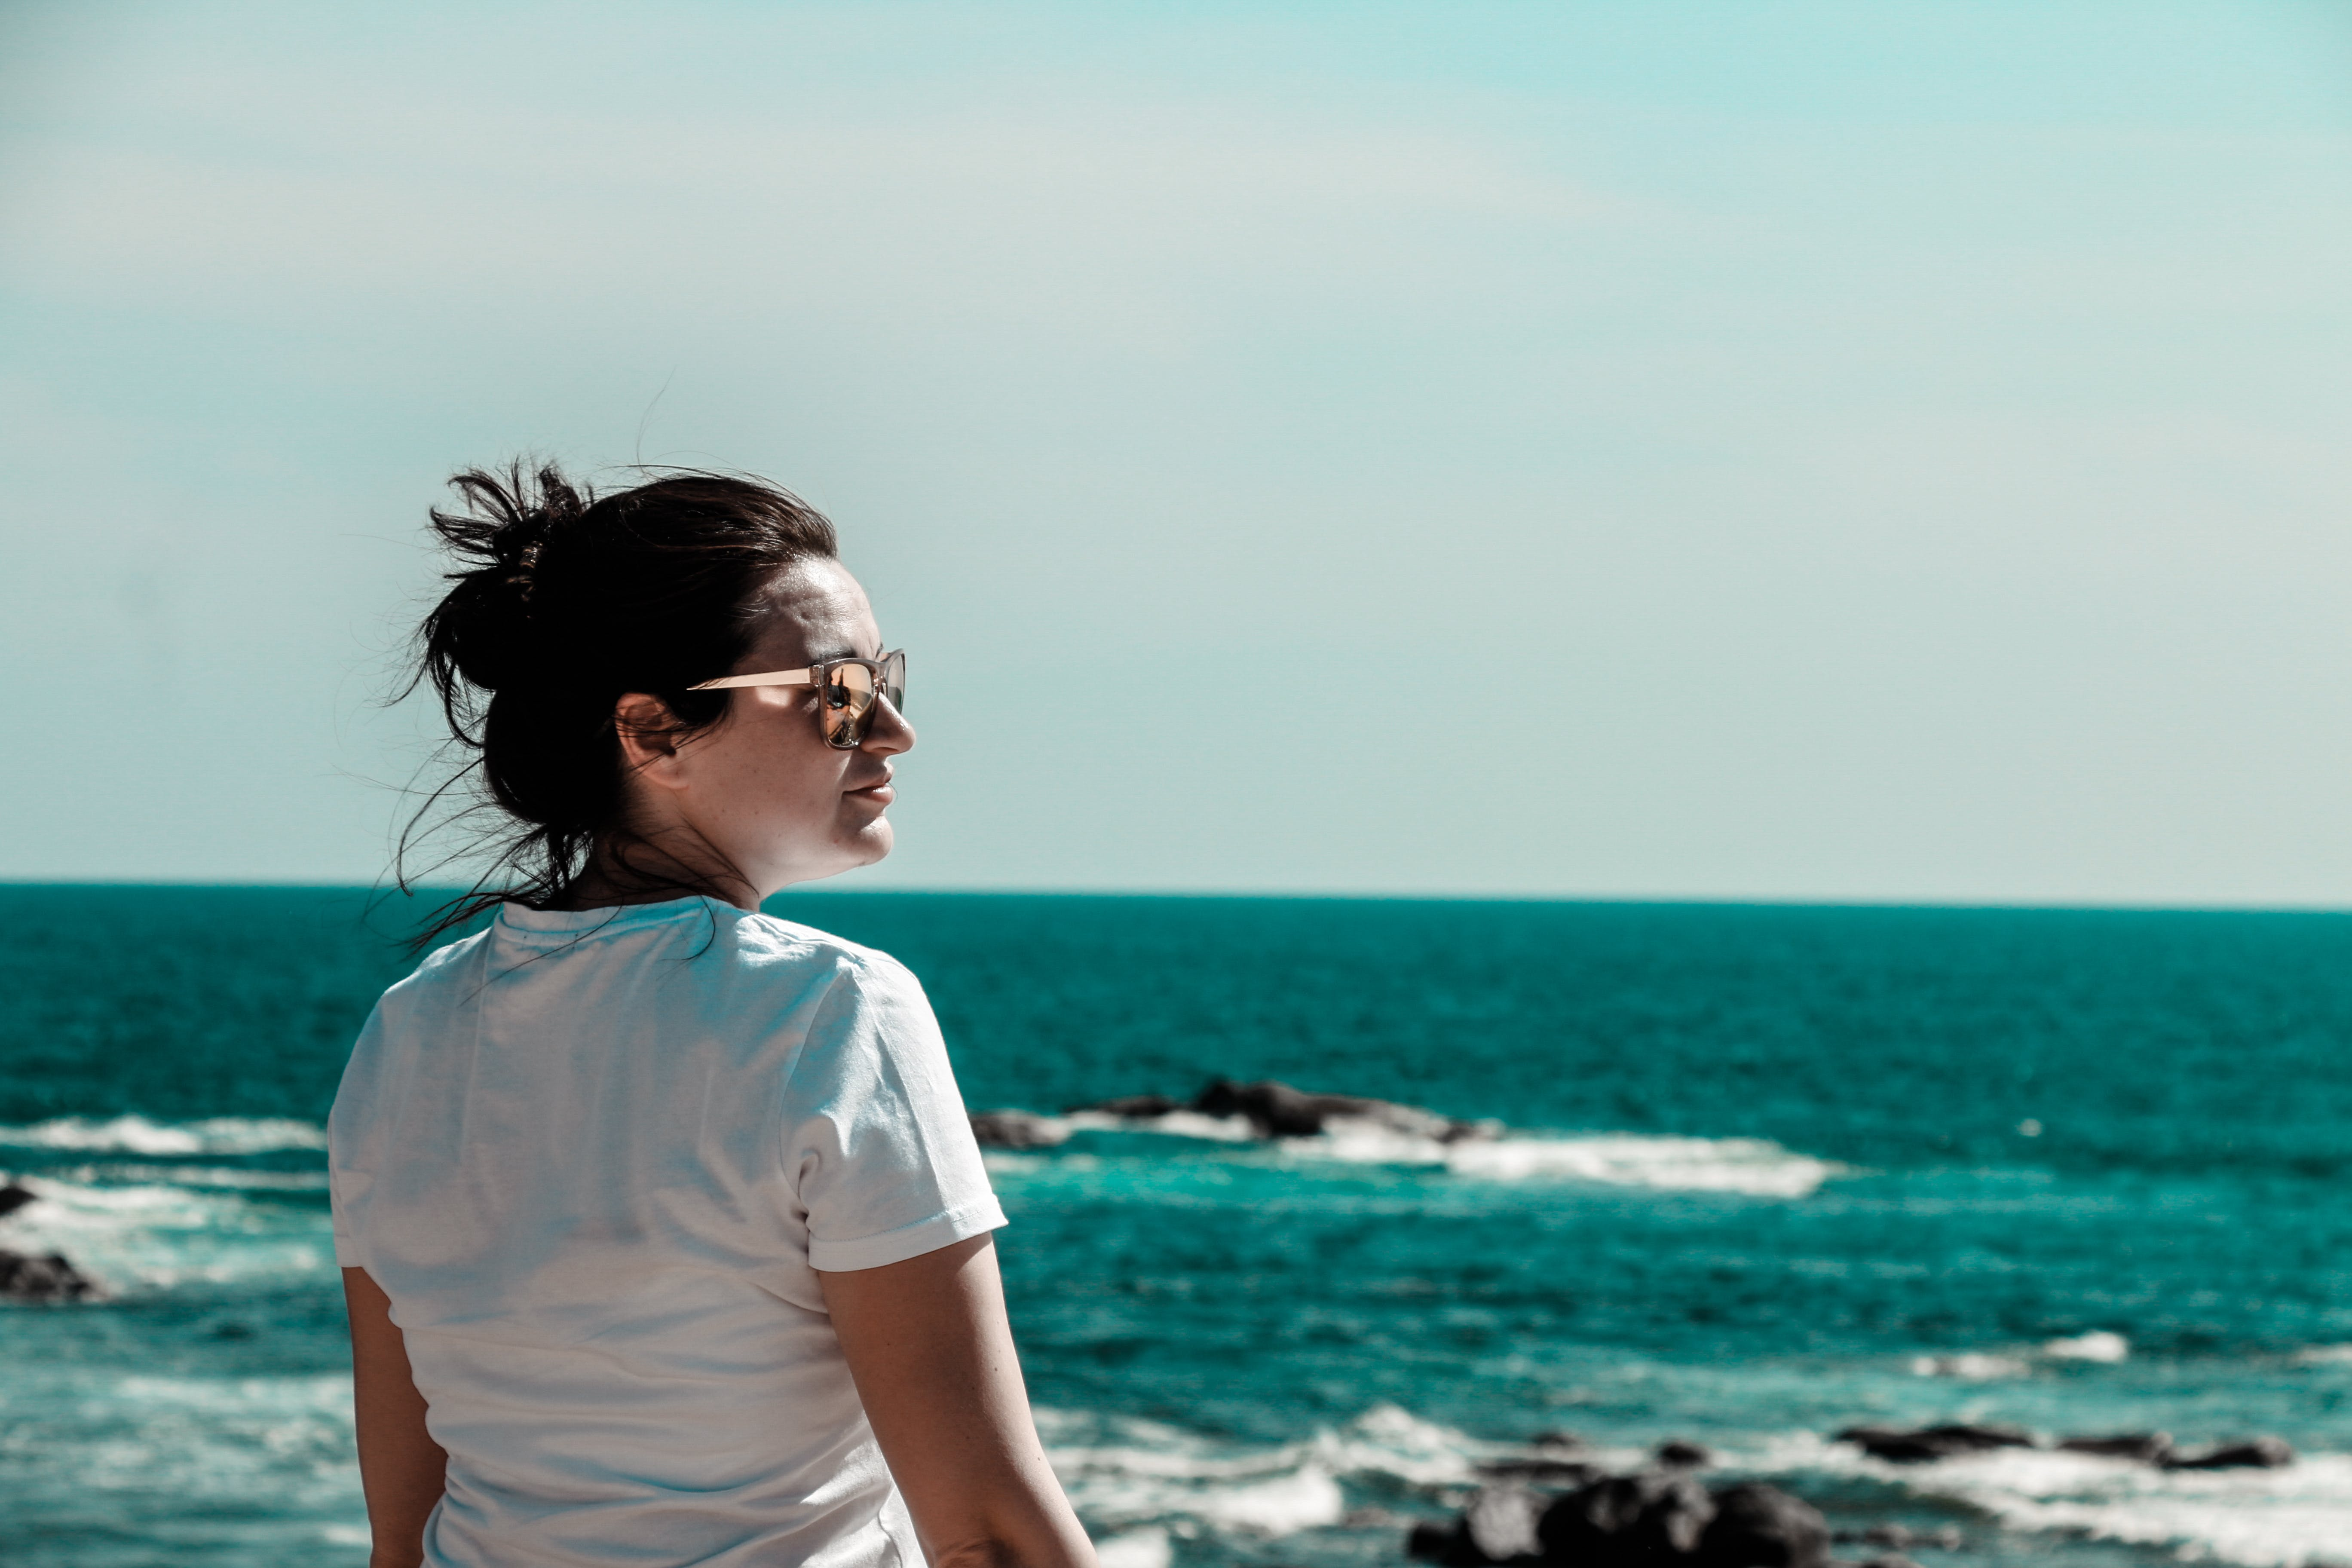 Woman Wearing White T-shirt With Distance at Sea With Rock Formations